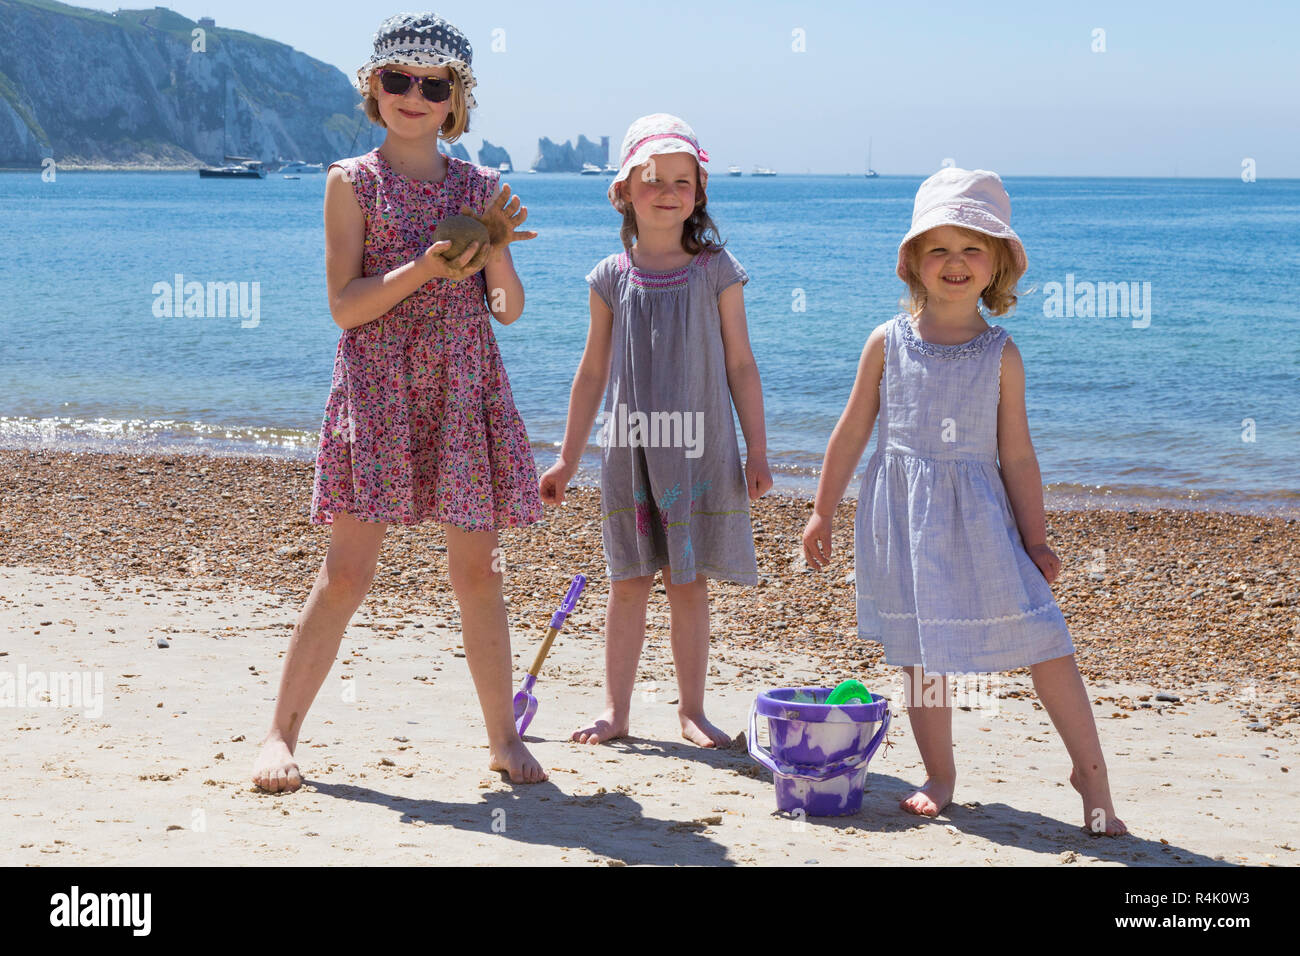 Three sisters, young girls, enjoy a family play on beach at Alum Bay on the Isle of Wight, UK. They wear hats and dresses / clothes to protect from the Sun. (98) - Stock Image